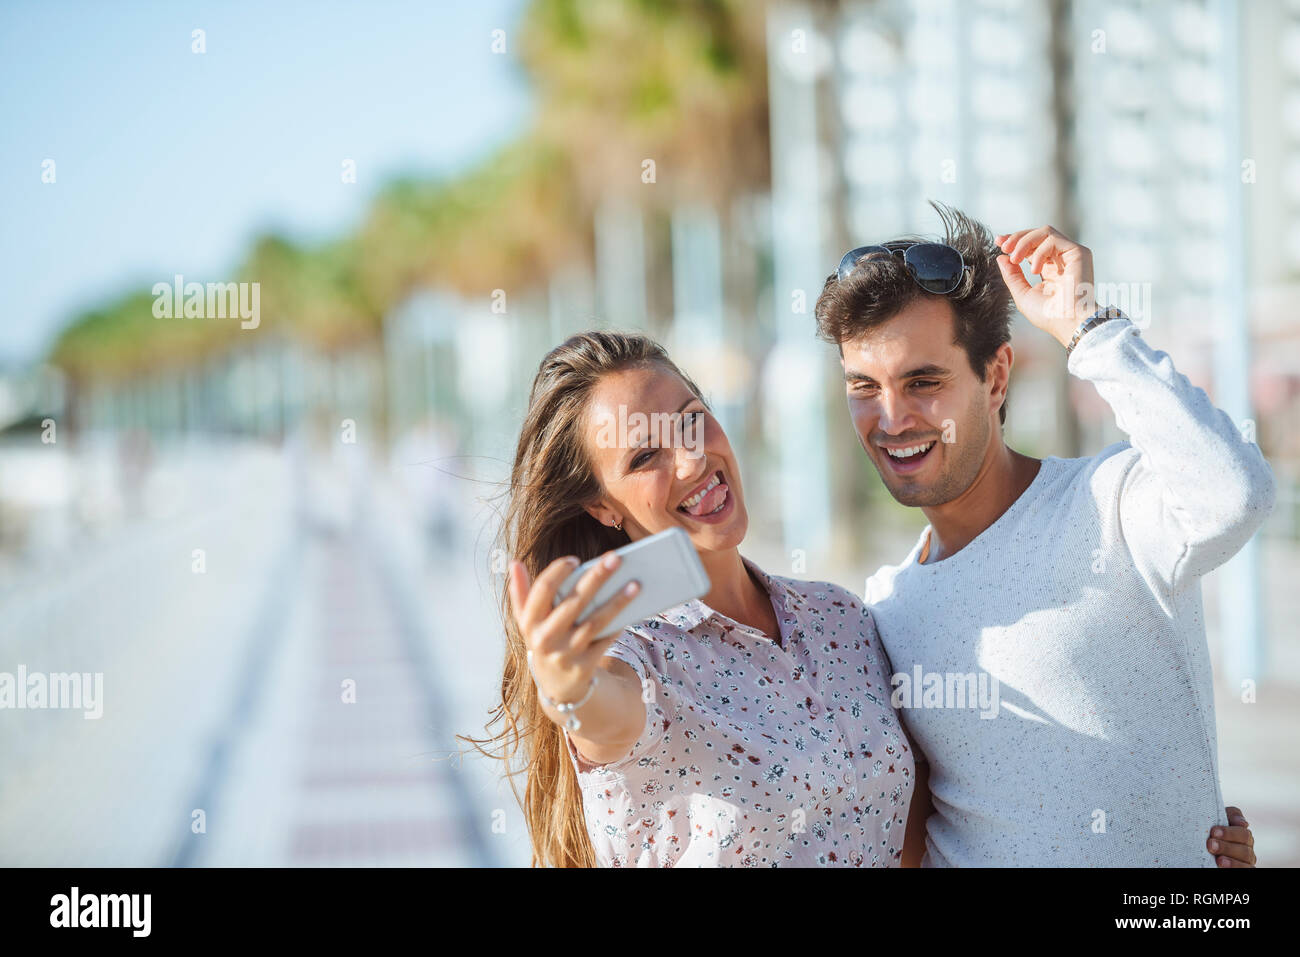 Happy young couple taking a selfie on promenade - Stock Image